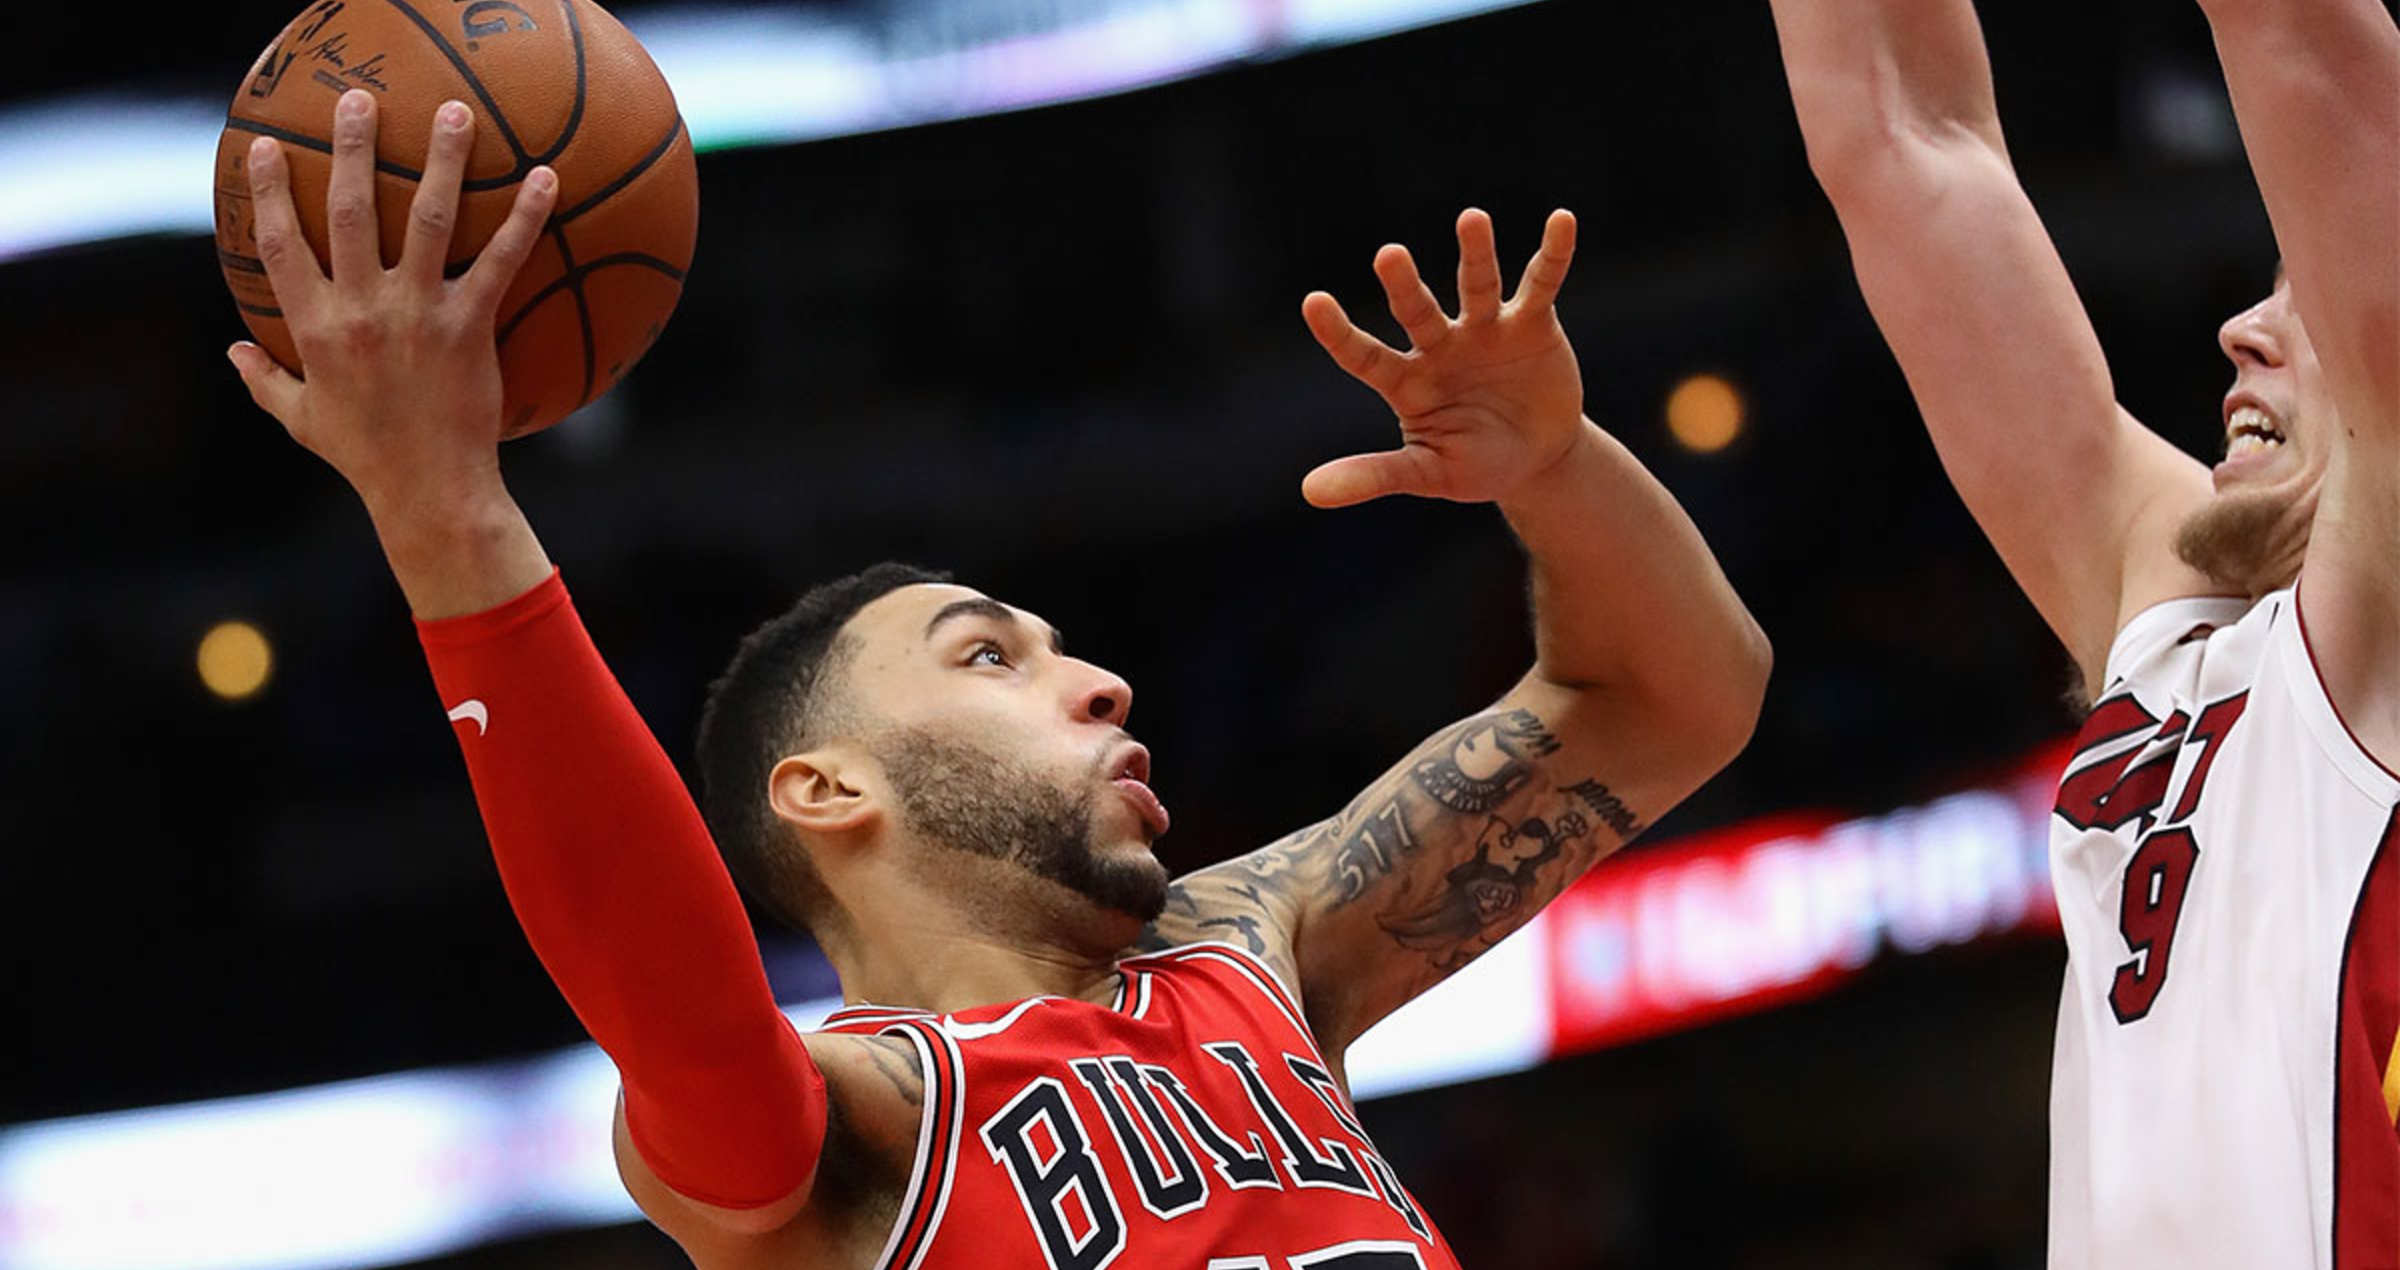 Denzel Valentine #45 of the Chicago Bulls shoots against Kelly Olynyk #9 of the Miami Heat at the United Center